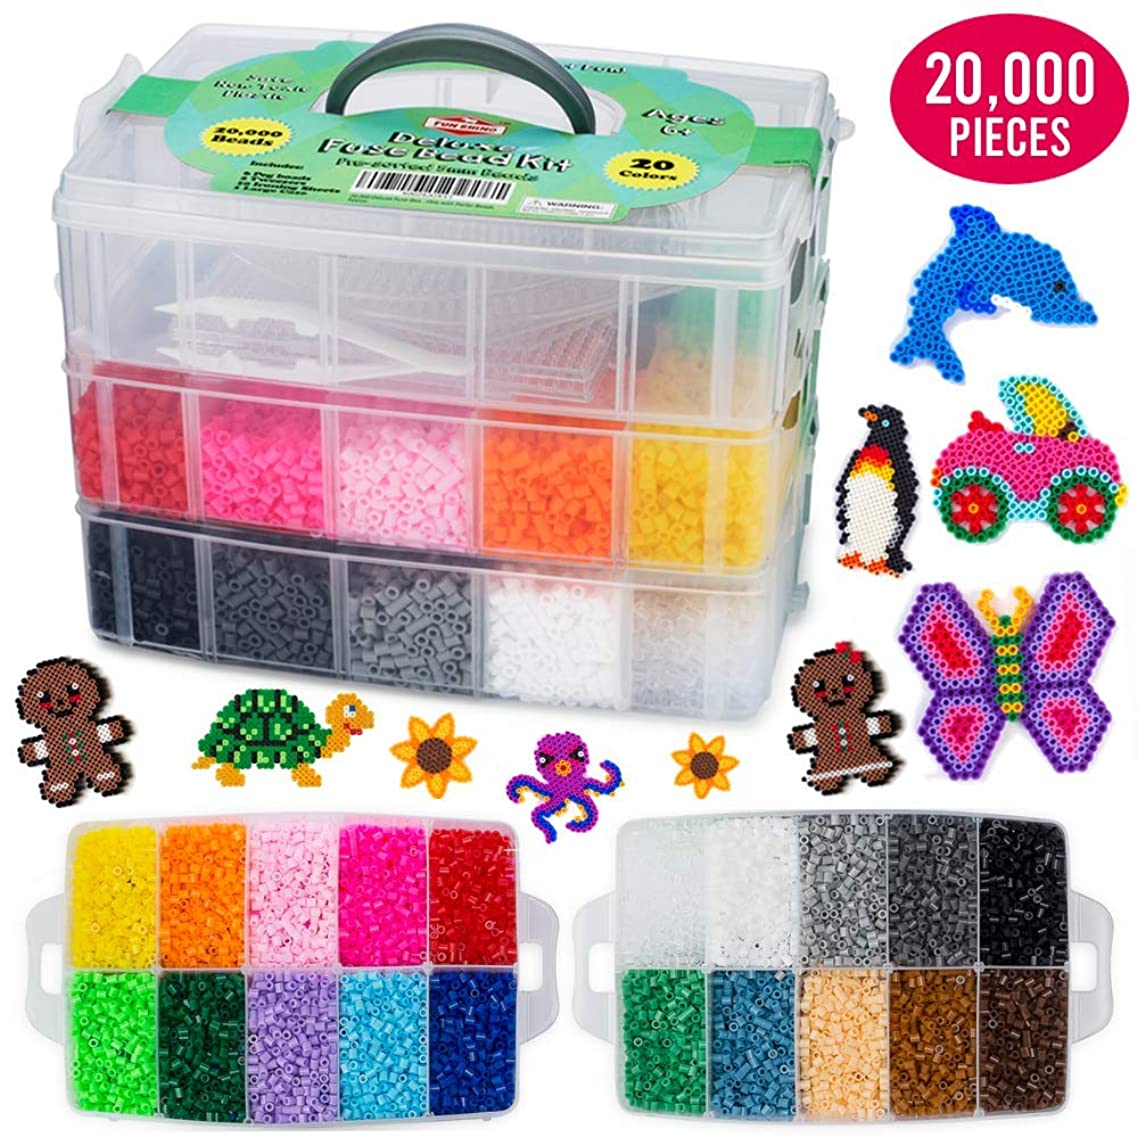 20,000 Deluxe Fuse Bead Kit Including 6 Peg Boards, Transparent Ironing Sheets, Tweezers and Case - Fuse Beads Compatible with Perler Beads